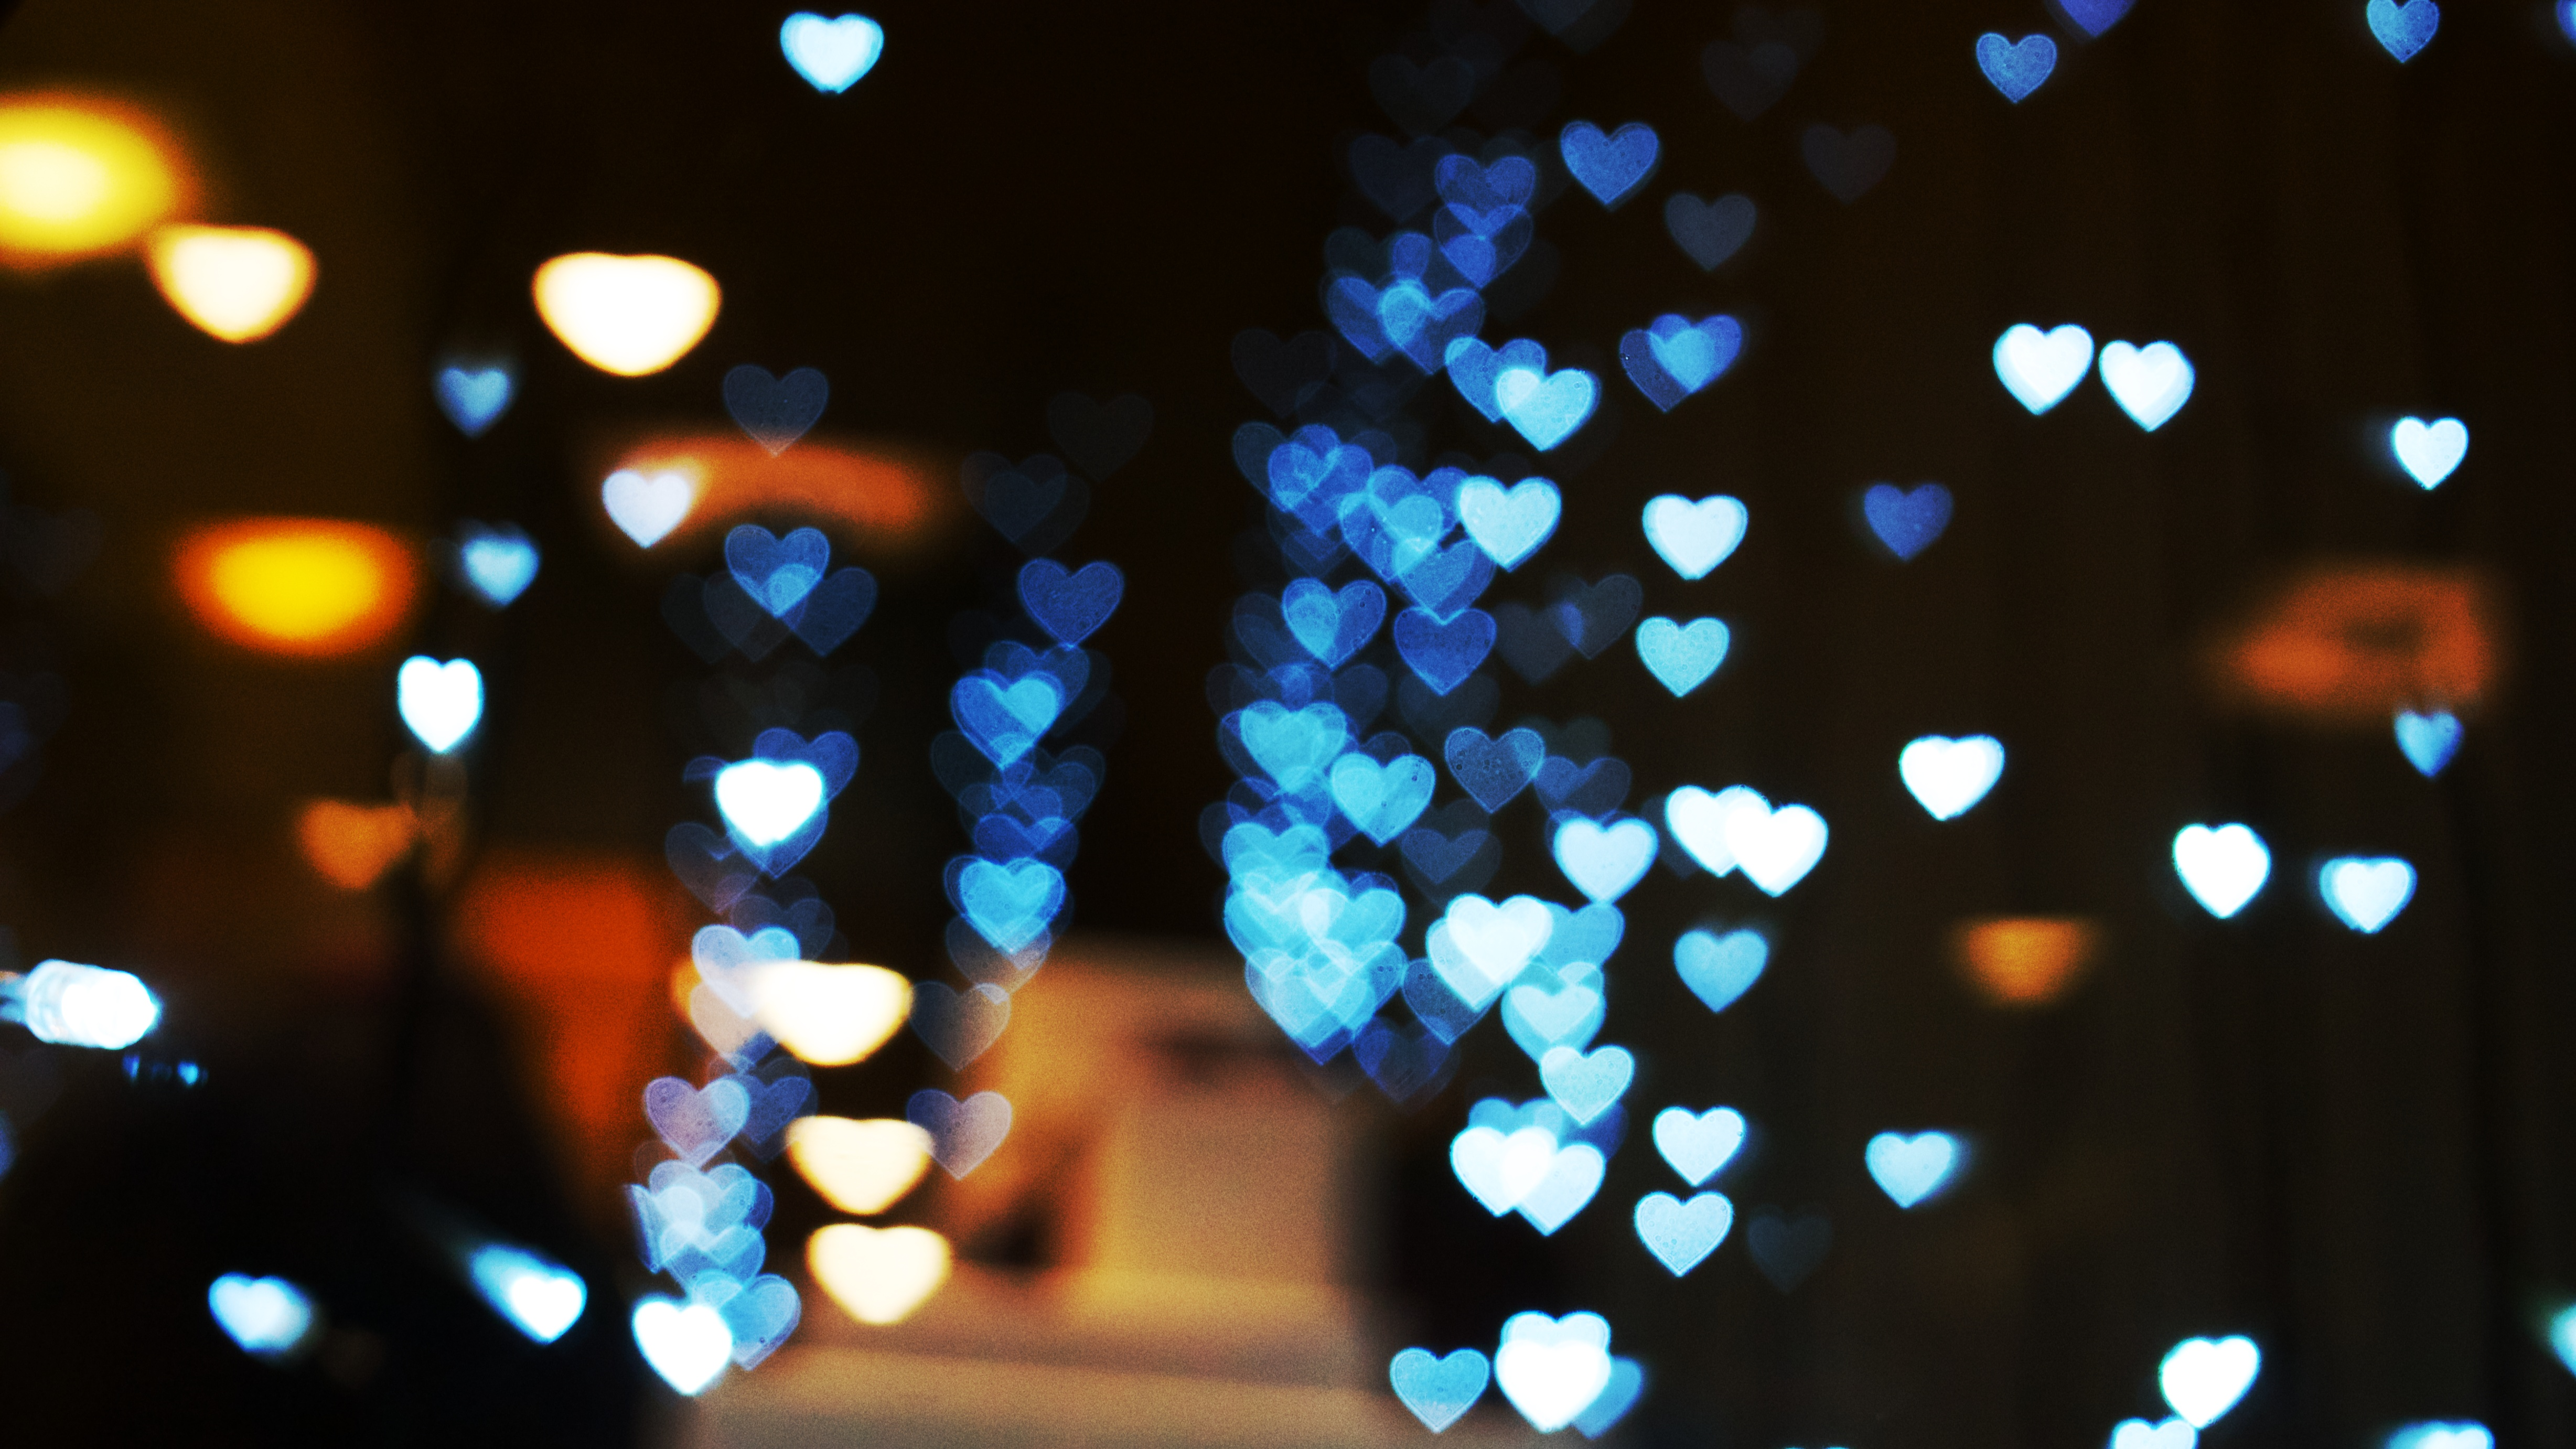 69533 download wallpaper Hearts, Love, Glare, Shine, Light screensavers and pictures for free